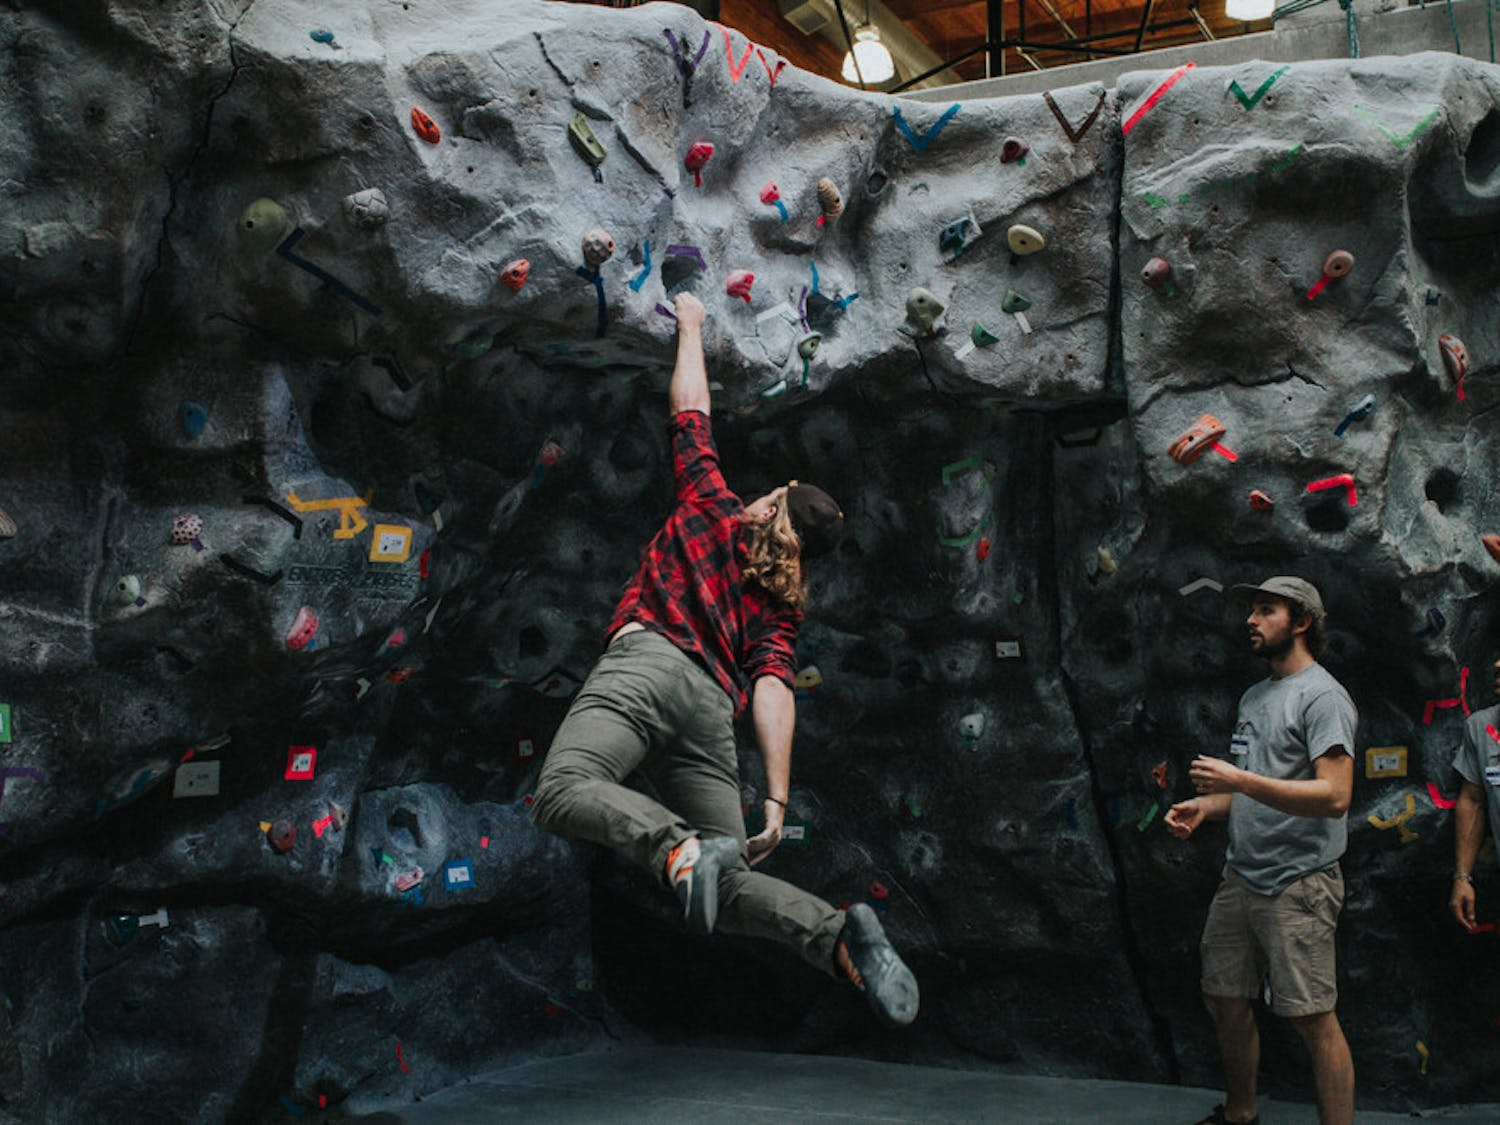 IMG_2204_Logan.Ian-use-from-last-year-during-our-Dyno-competition.-The-climber-is-unidentified-and-the-spotters-are-Veni-Vidi-Ascendi-staff-Ian-Dandridge-left-and-Logan-Fletcher-right